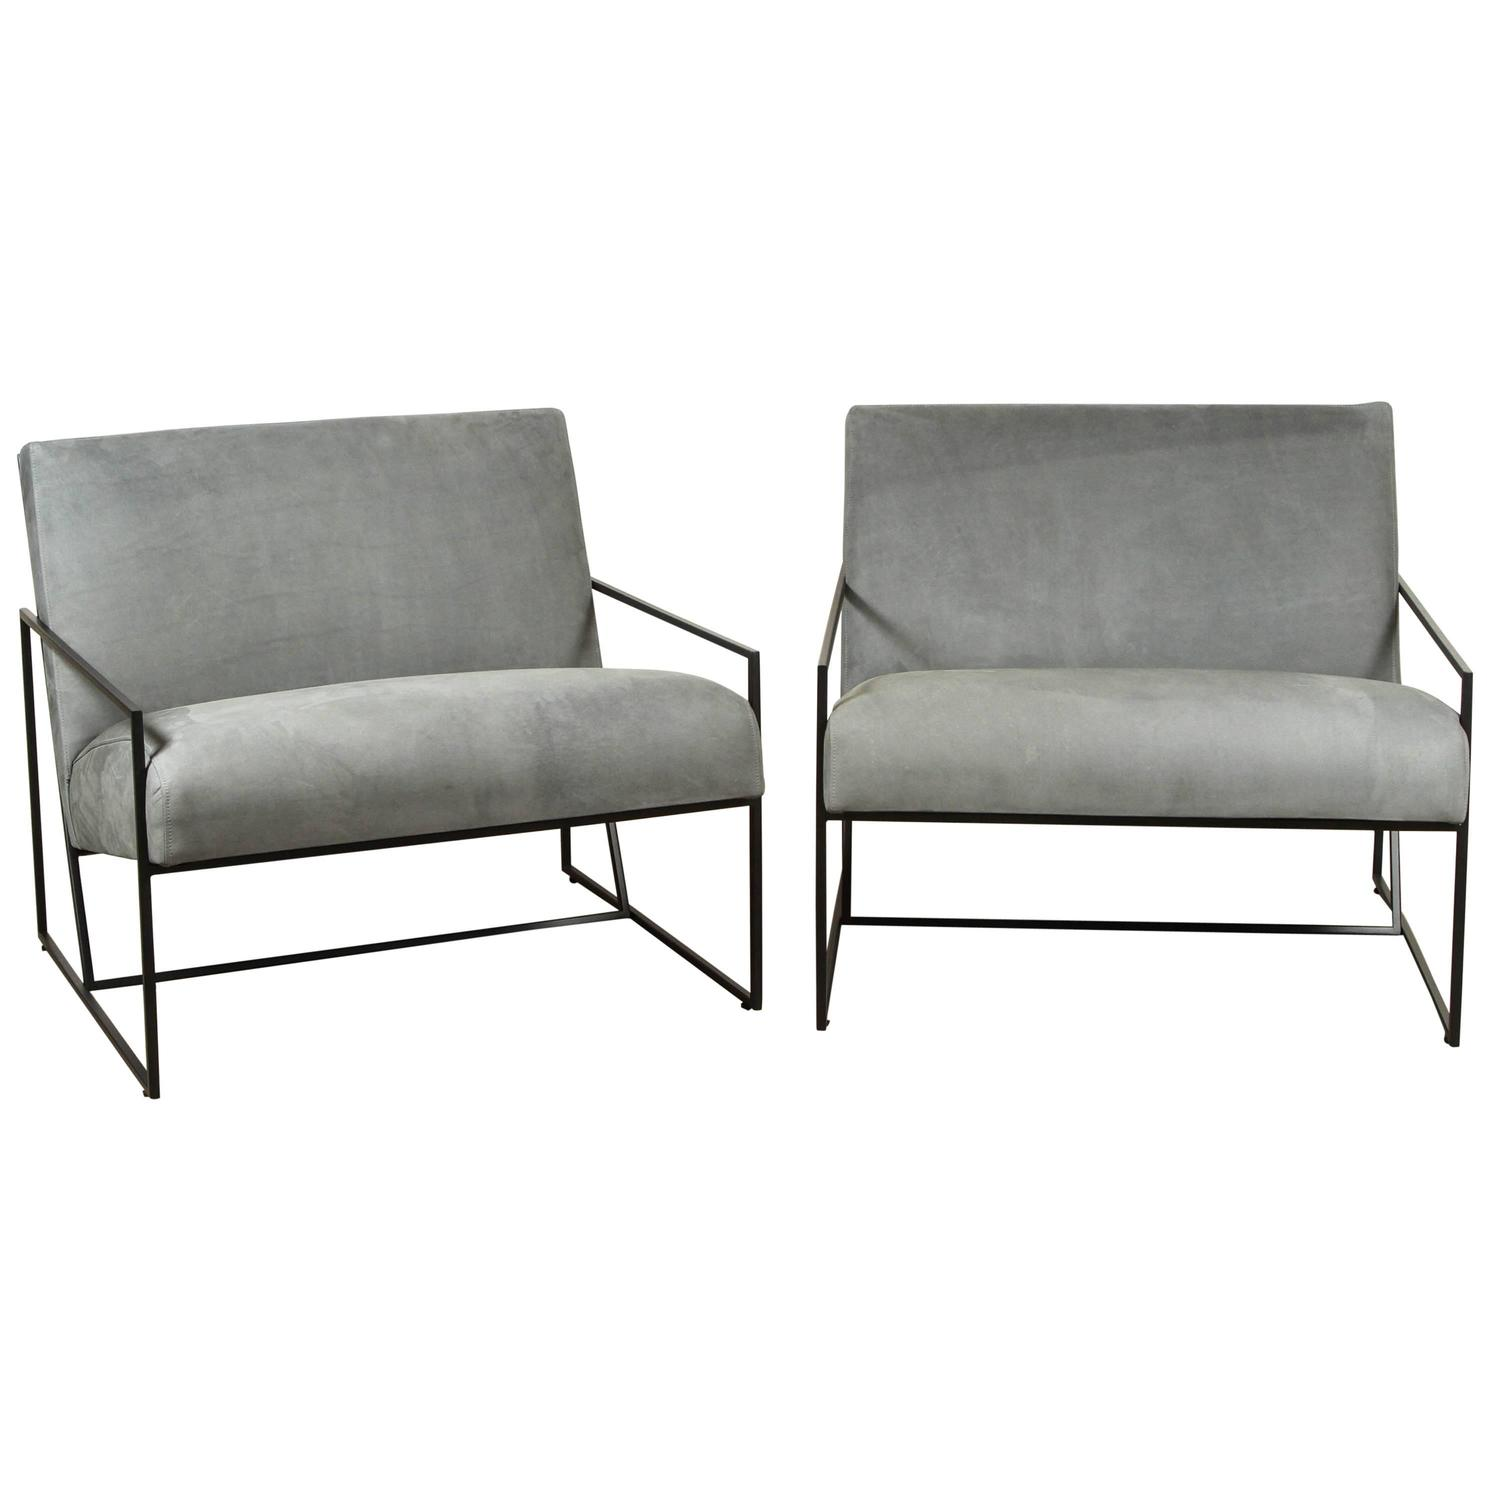 metal frame chairs coleman oversized quad chair thin lounge by lawson fenning for sale at 1stdibs